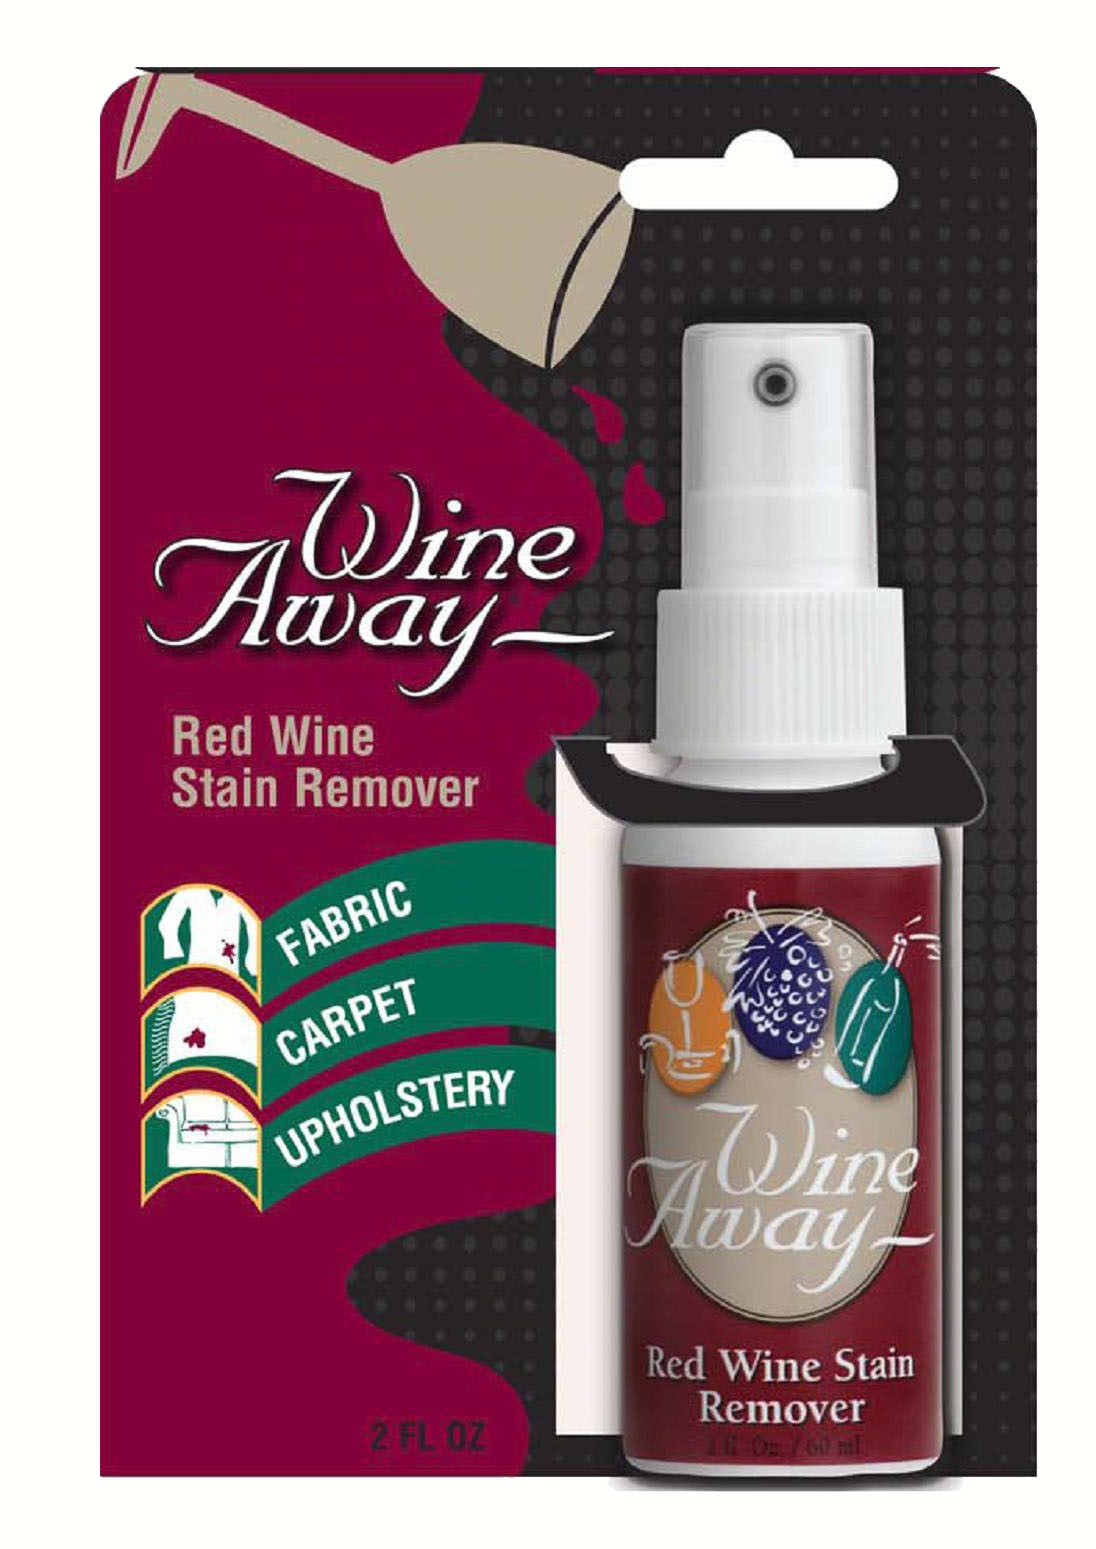 Red Wine Stain Remover on Header Card (2 oz bottle)